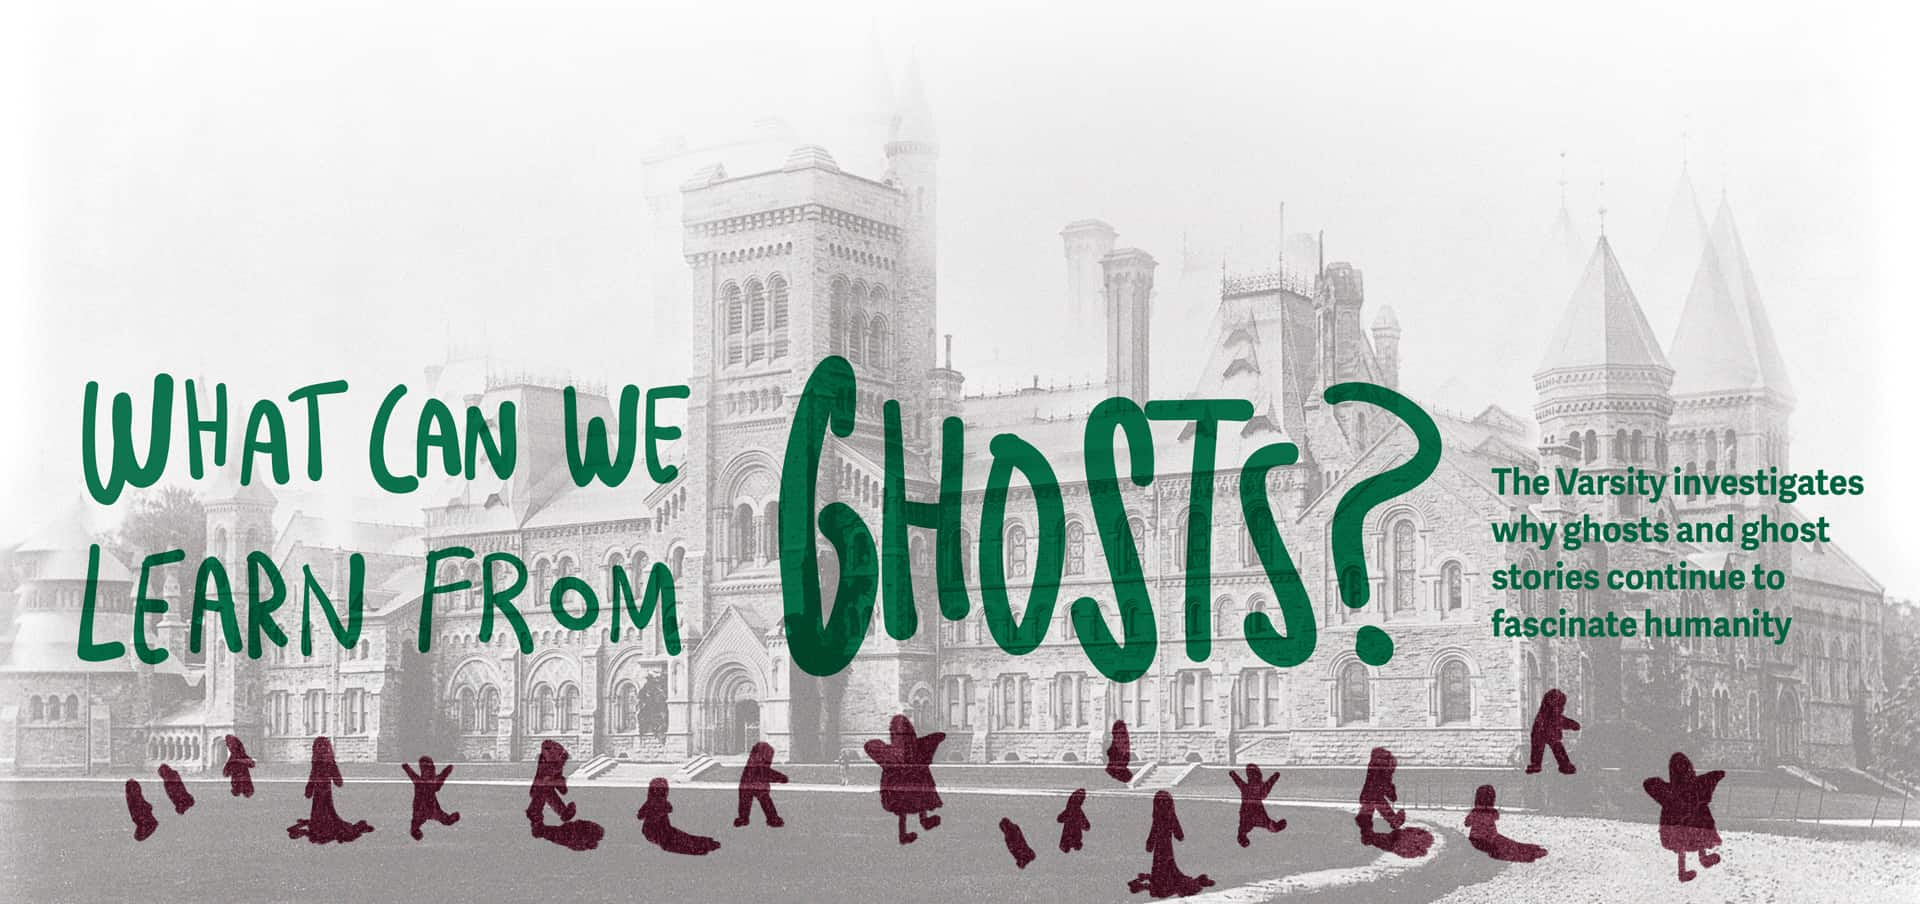 What can we learn from ghosts?